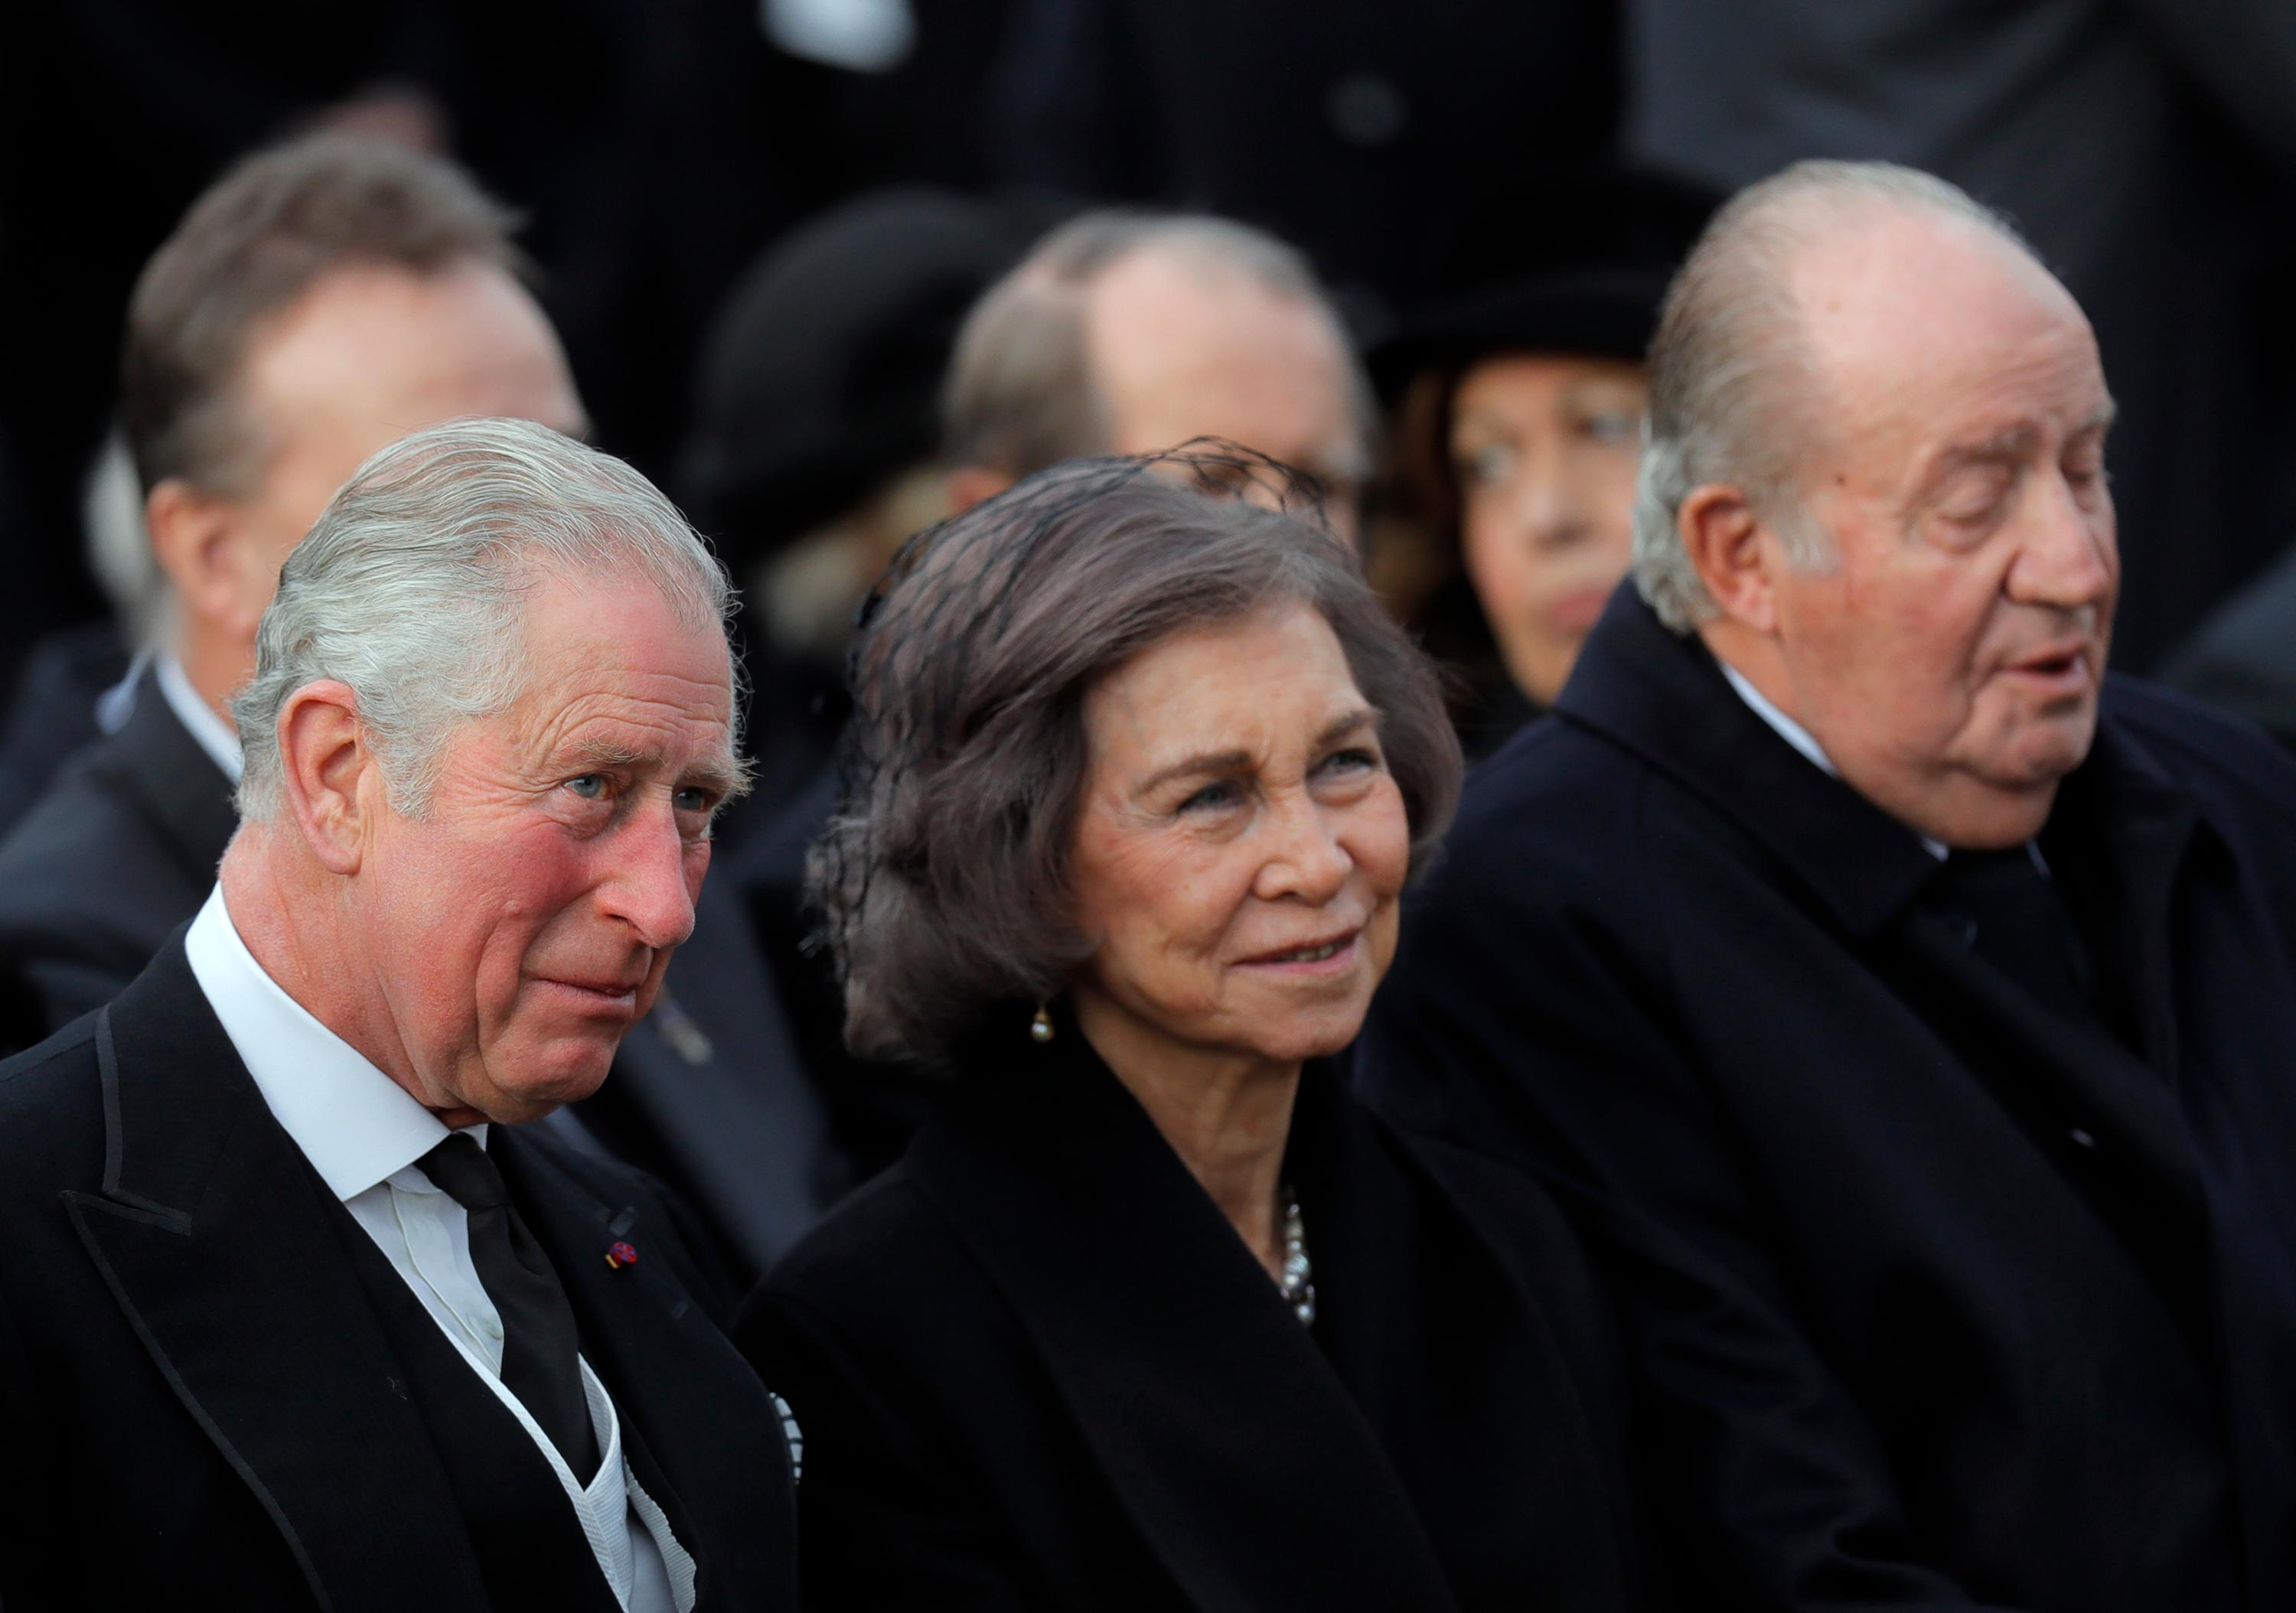 Prince Charles of Britain, left, former Spanish royals, Queen Sofia, center, and King Juan Carlos I attend the funeral ceremony in tribute to late Romanian King Michael in Bucharest, Romania, Saturday, Dec.16, 2017. Thousands waited in line to pay their respects to Former King Michael, who ruled Romania during WWII, and died on Dec. 5, 2017, aged 96, in Switzerland. (AP Photo/Vadim Ghirda)